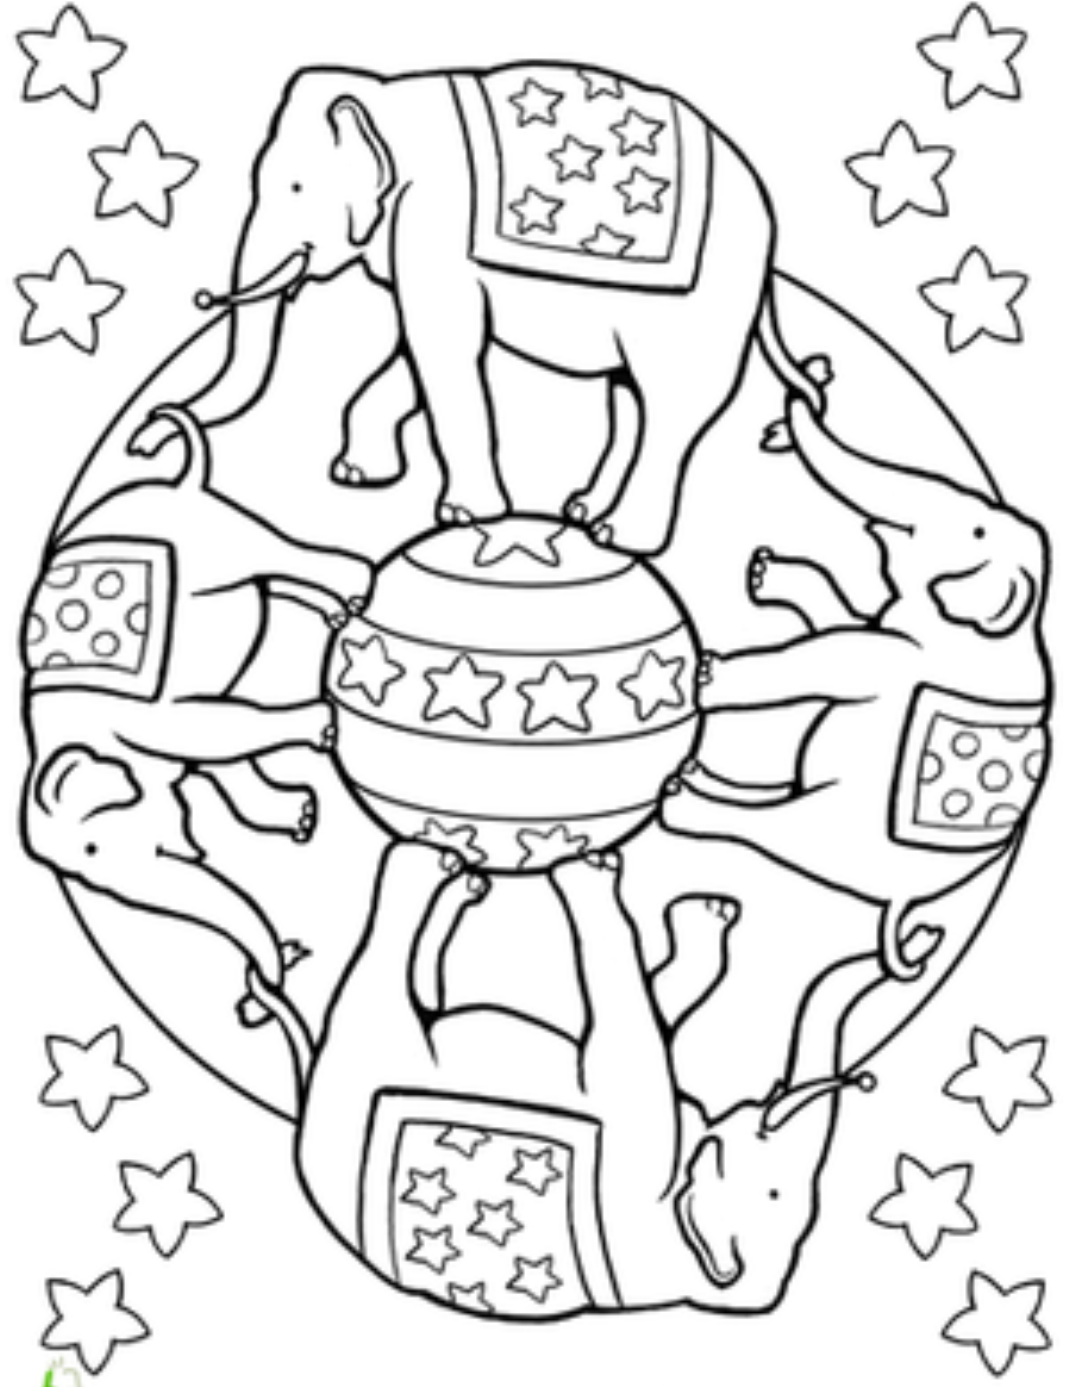 Free coloring pages elephant - Circus Elephant Mandala Coloring Pages Mandala Coloring Pages Of